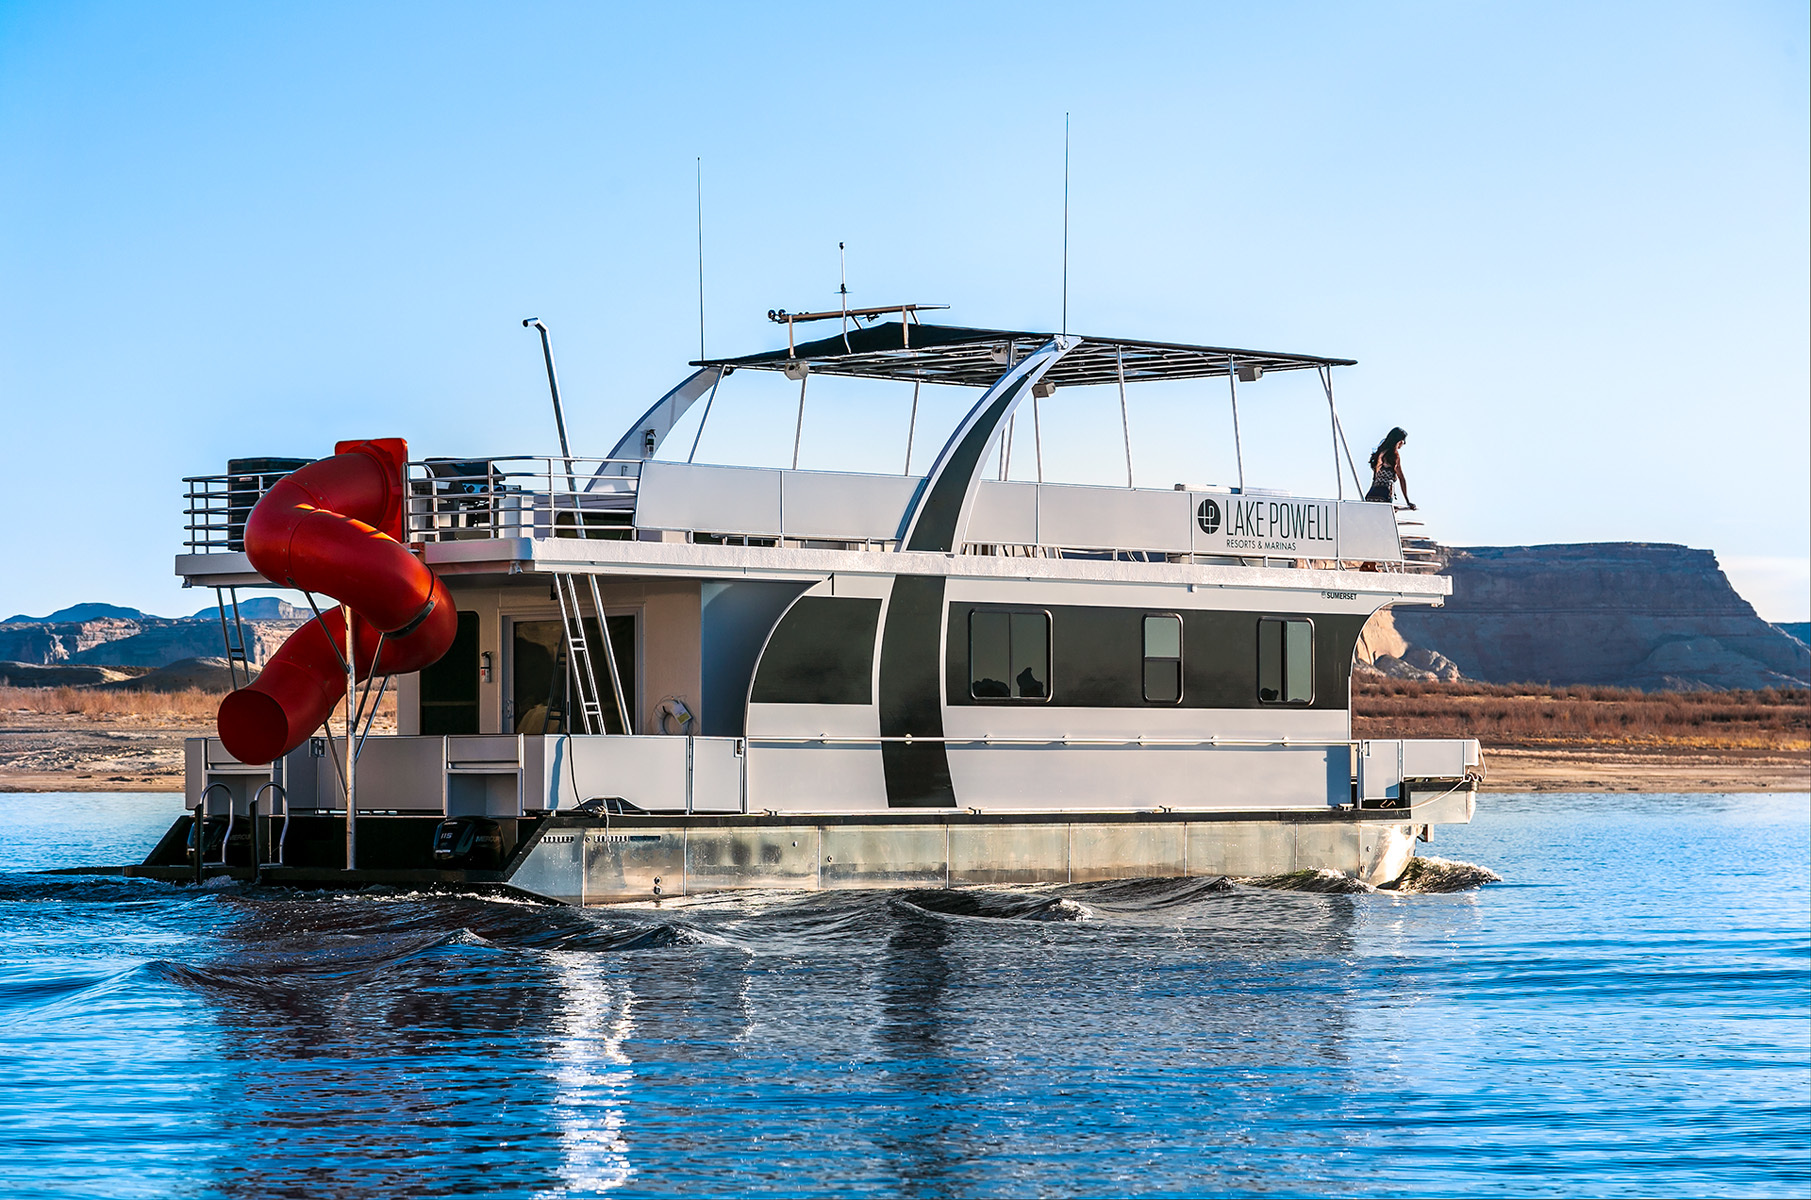 As National Parks reopen across the country, Aramark has modified and enhanced operations at the park properties it manages, including Lake Powell Resorts & Marinas, to meet the safety and hygiene standards of today's environment.